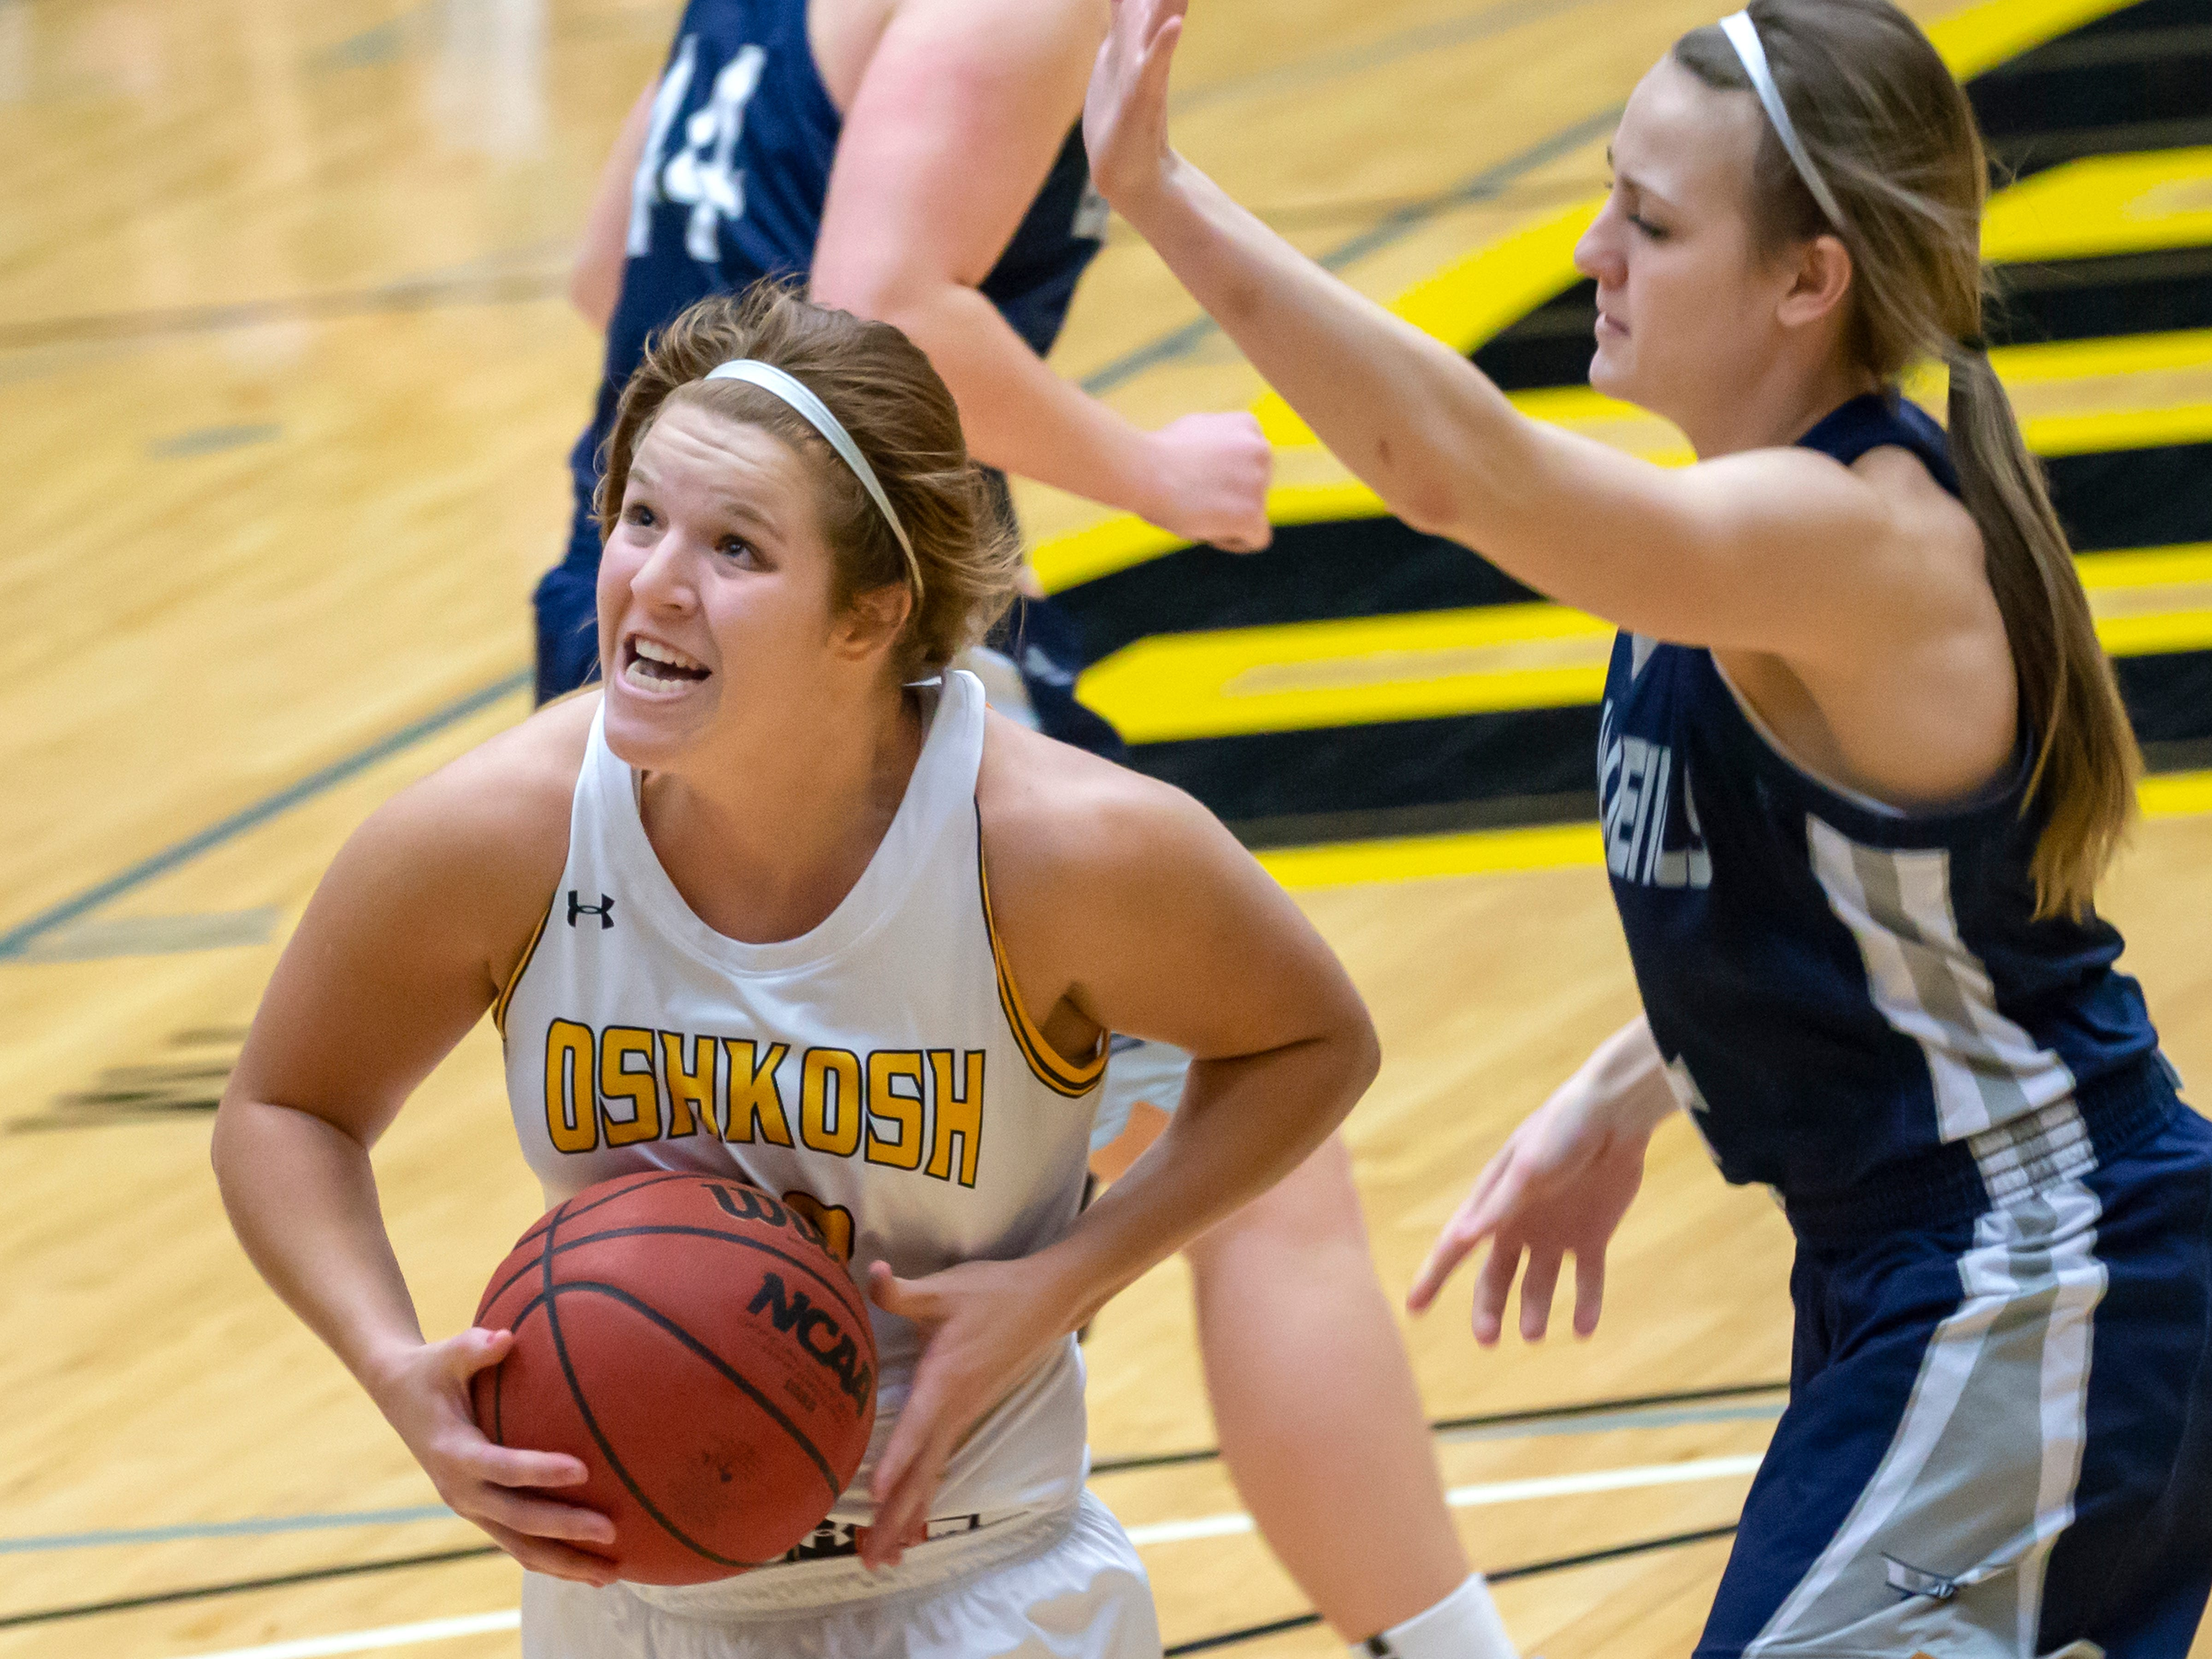 UW-Oshkosh's Nikki Arneson drives to the basket past UW-Stout's Becky Fesenmaier at the Kolf Sports Center on Saturday, January 5, 2019.